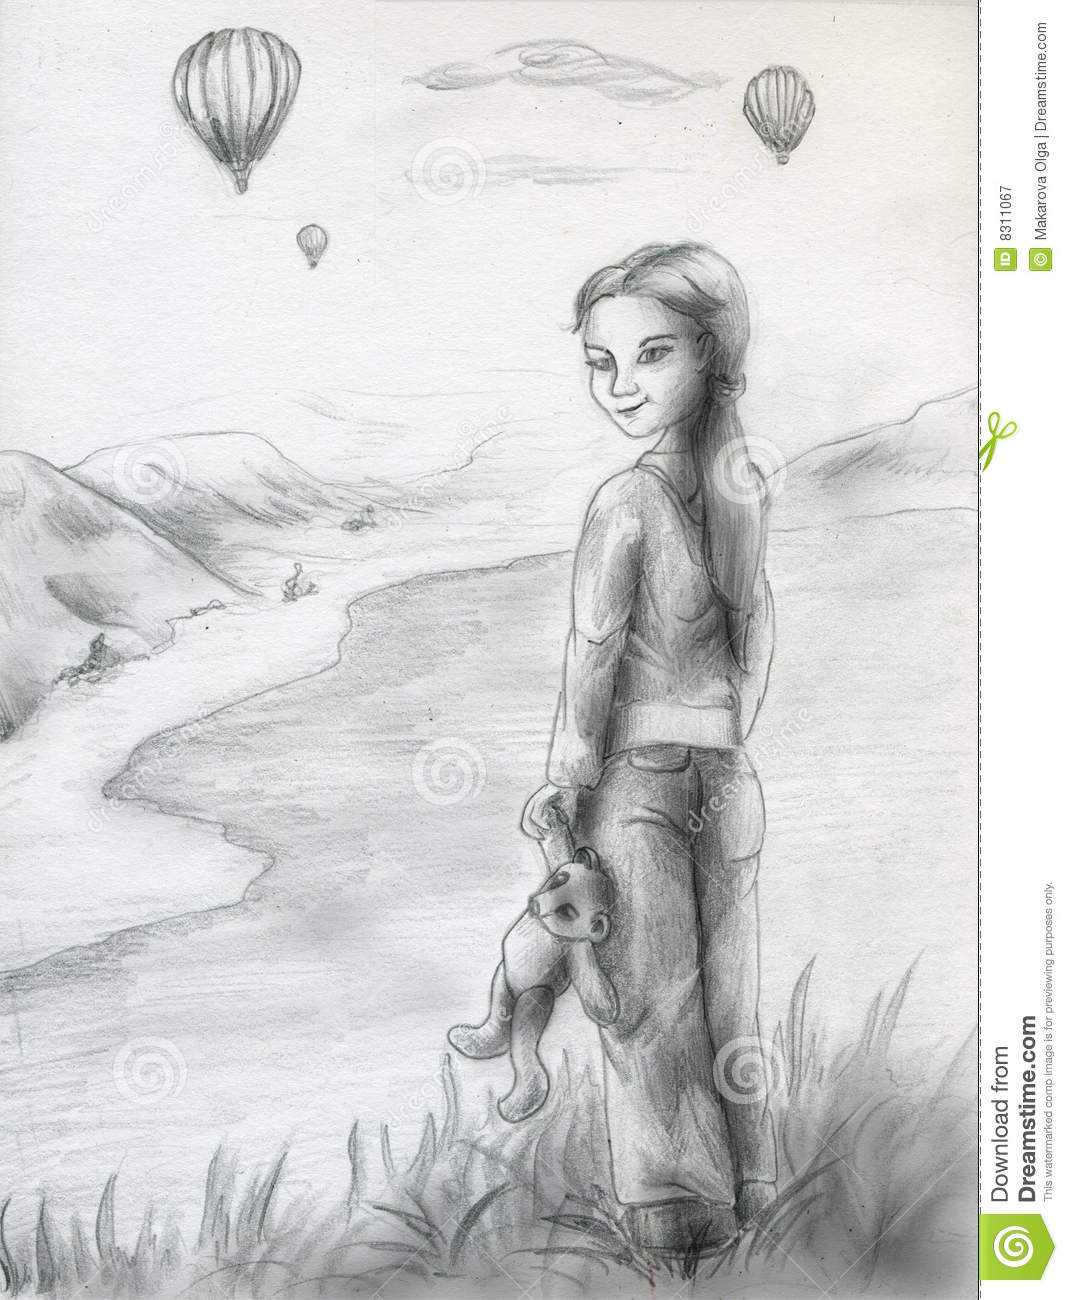 Girl with teddy bear invites you to watch hot air balloon show from the hill pencil drawing